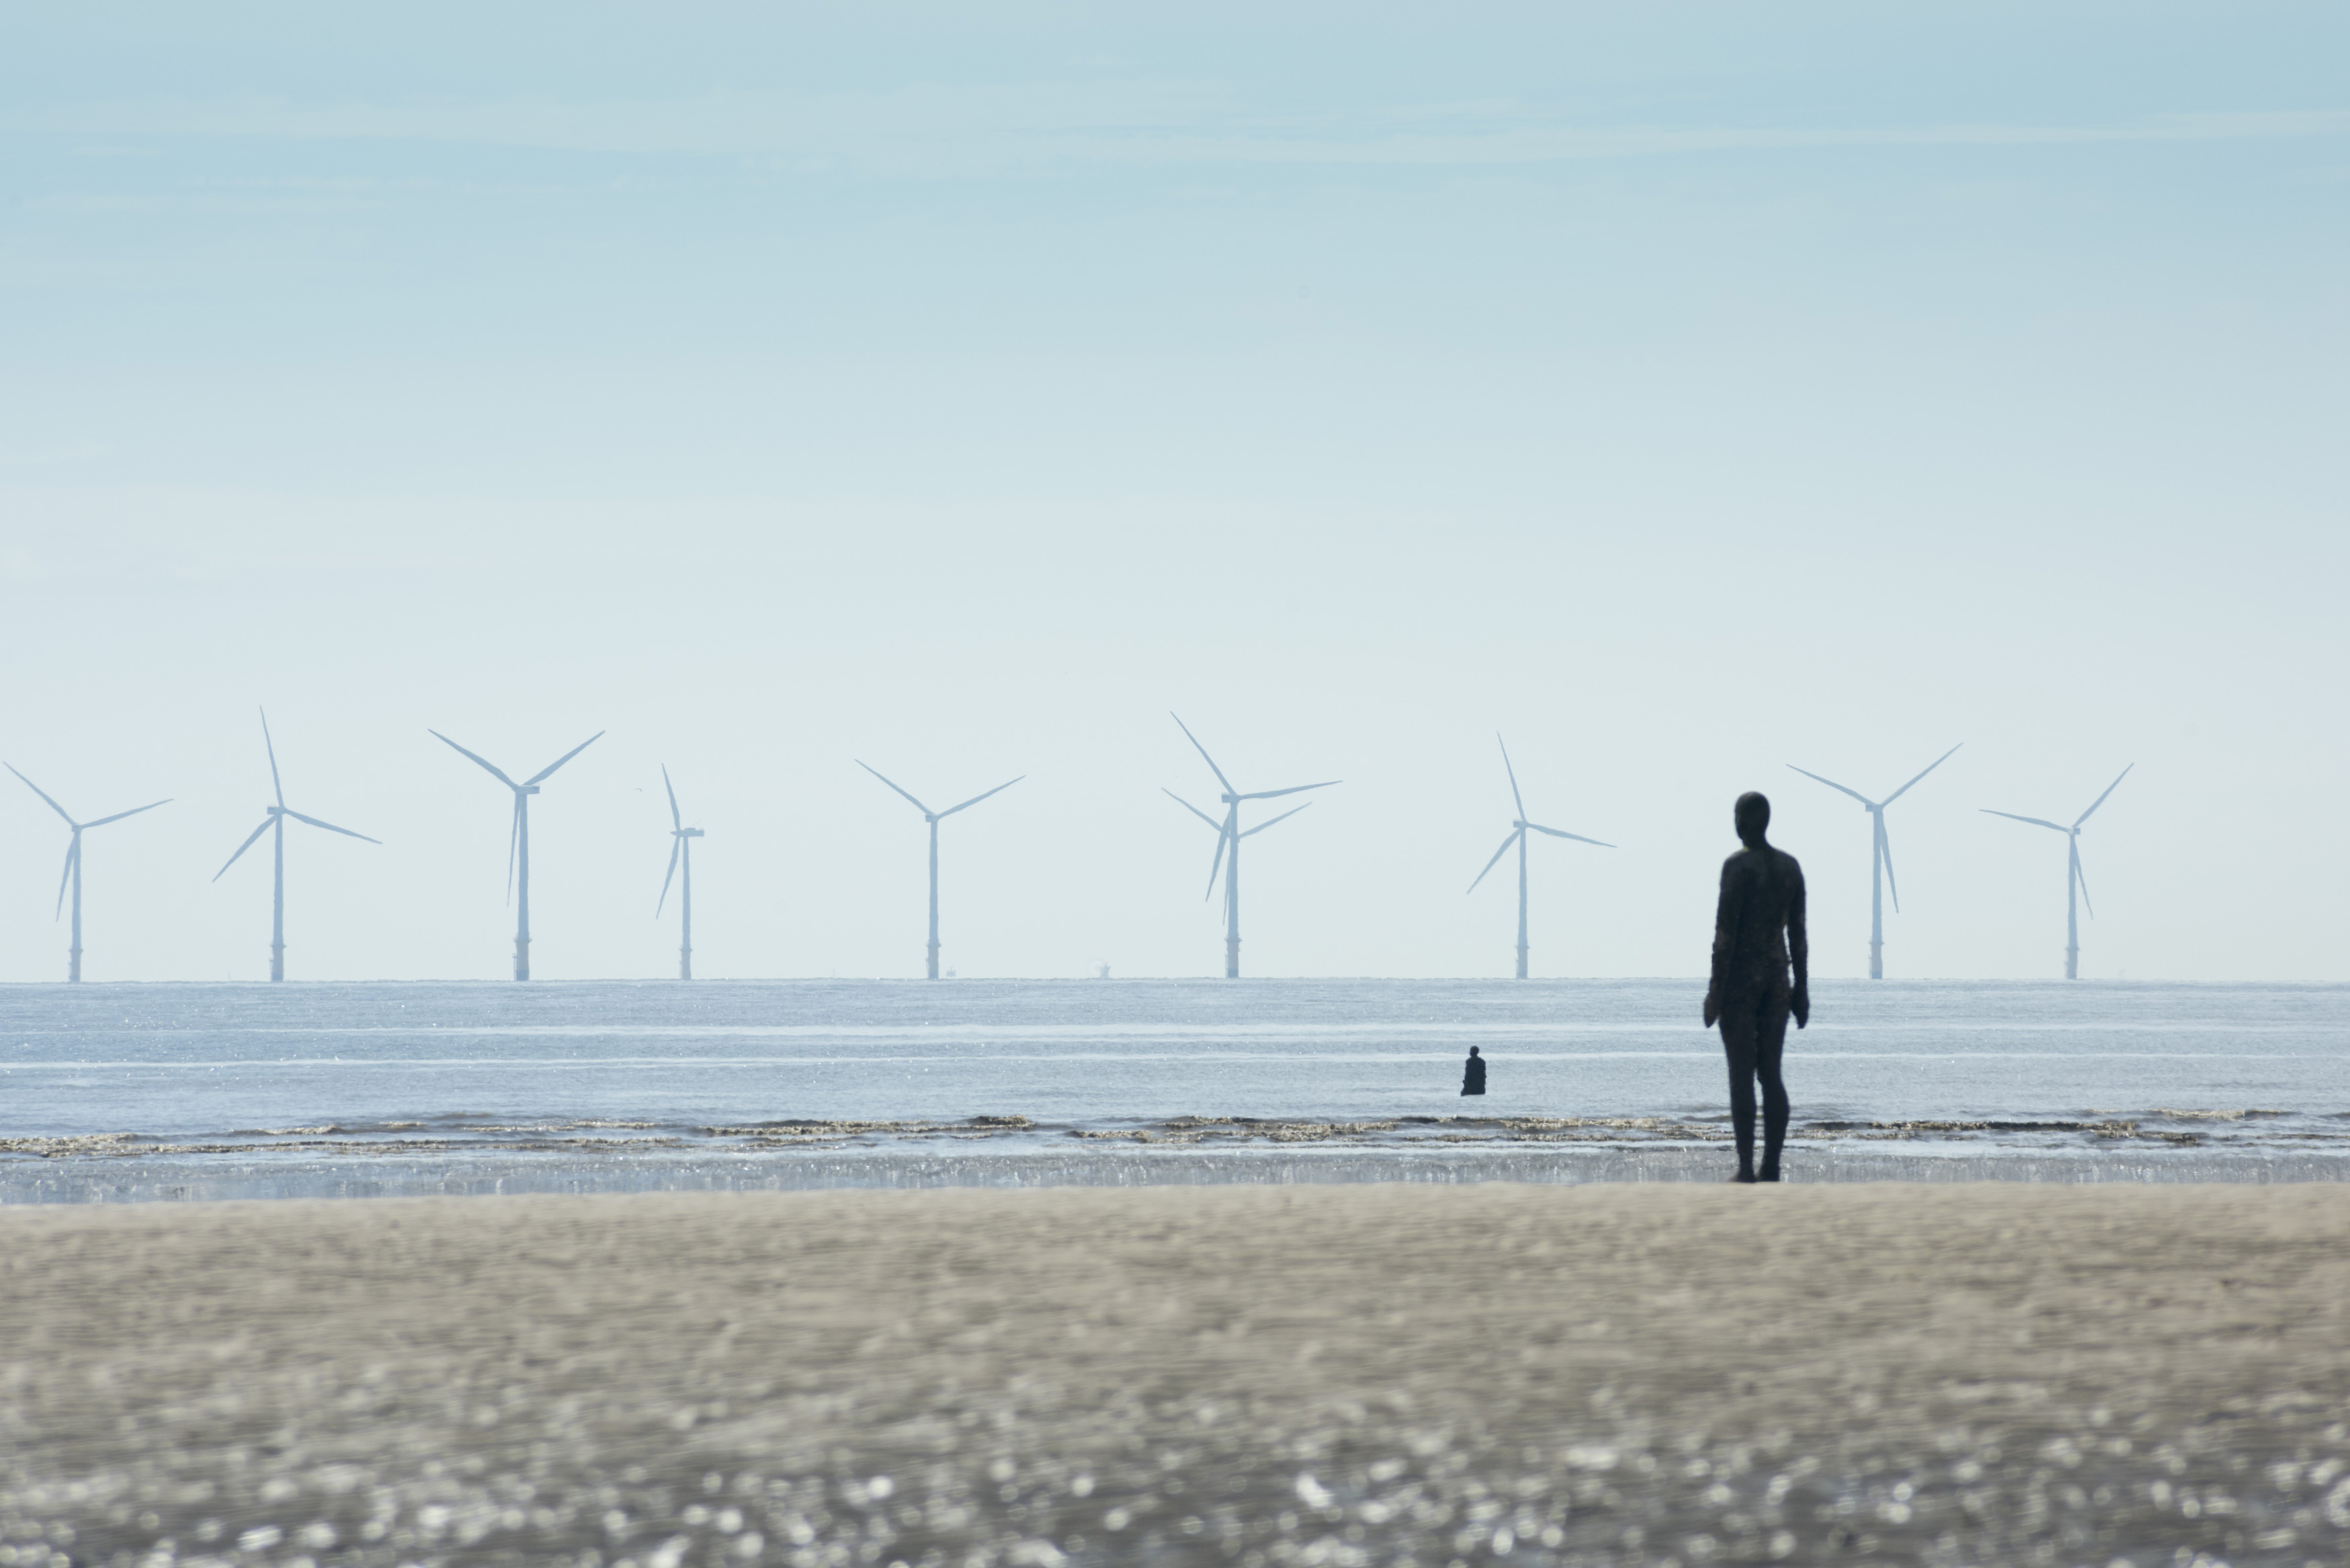 Row of multiple giant wind power turbines in background of Antony Gormley statue in Crosby, United Kingdom